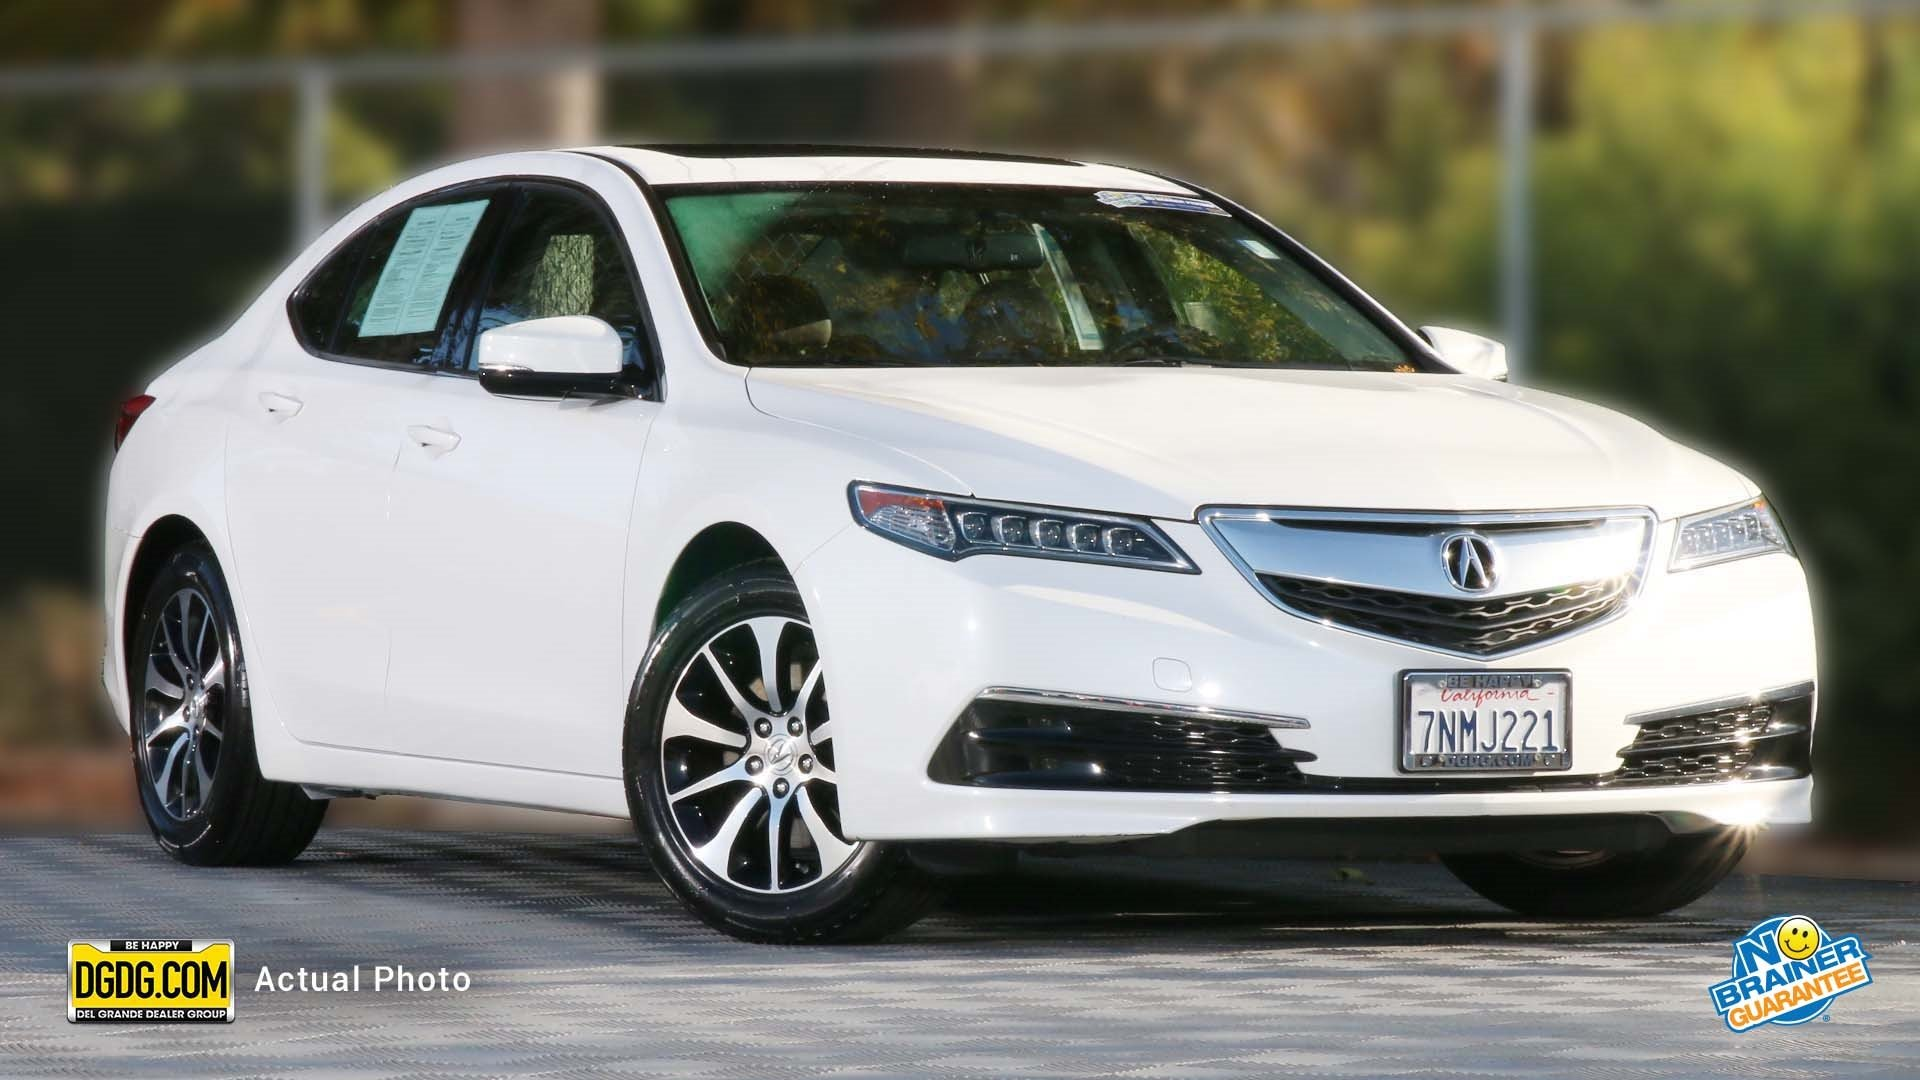 Pre Owned 2015 Acura TLX 2 4L 4D Sedan in San Jose UB4728